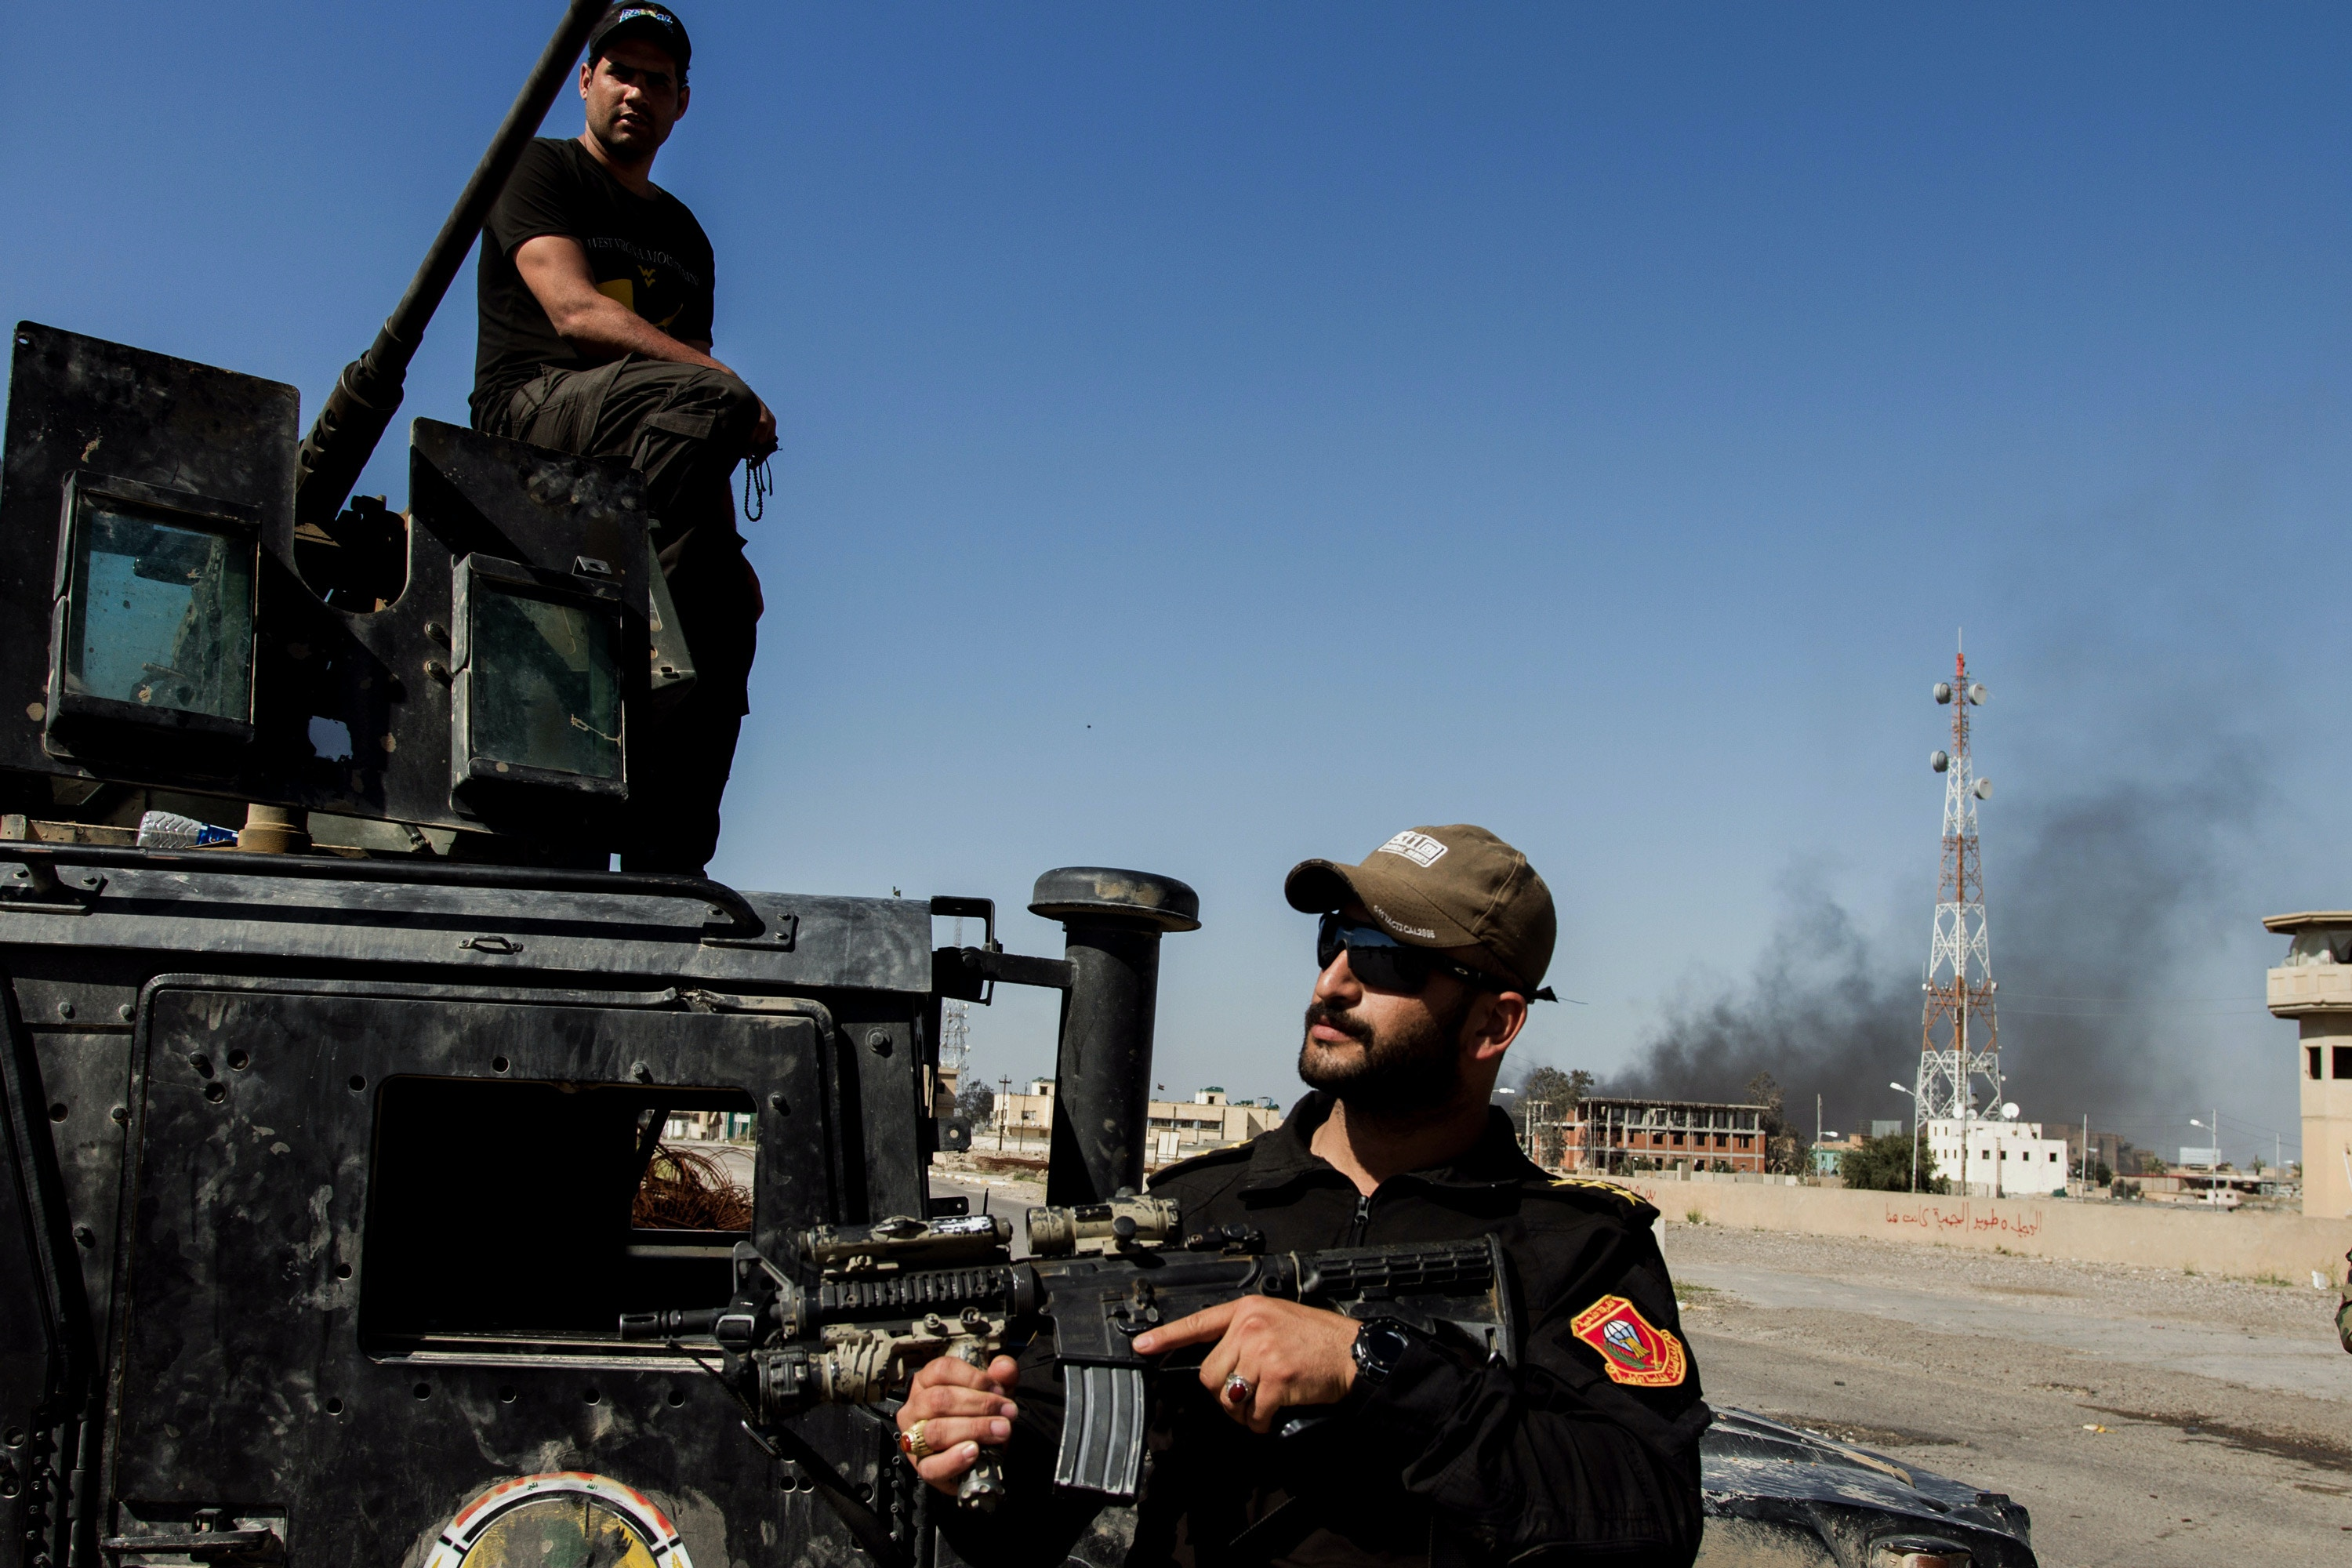 Shi'ite soldiers control the streets of Tirkit, where a few IS fighters are still entrenched, in Tirkit, Iraq, 05 April 2015. The majority of the city has been taken by Shi'ite mobilization forces Al-Hashd al-Shaabi after having been controlled by the IS militia since June 2014. Photo by: Sebastian Backhaus/picture-alliance/dpa/AP Images